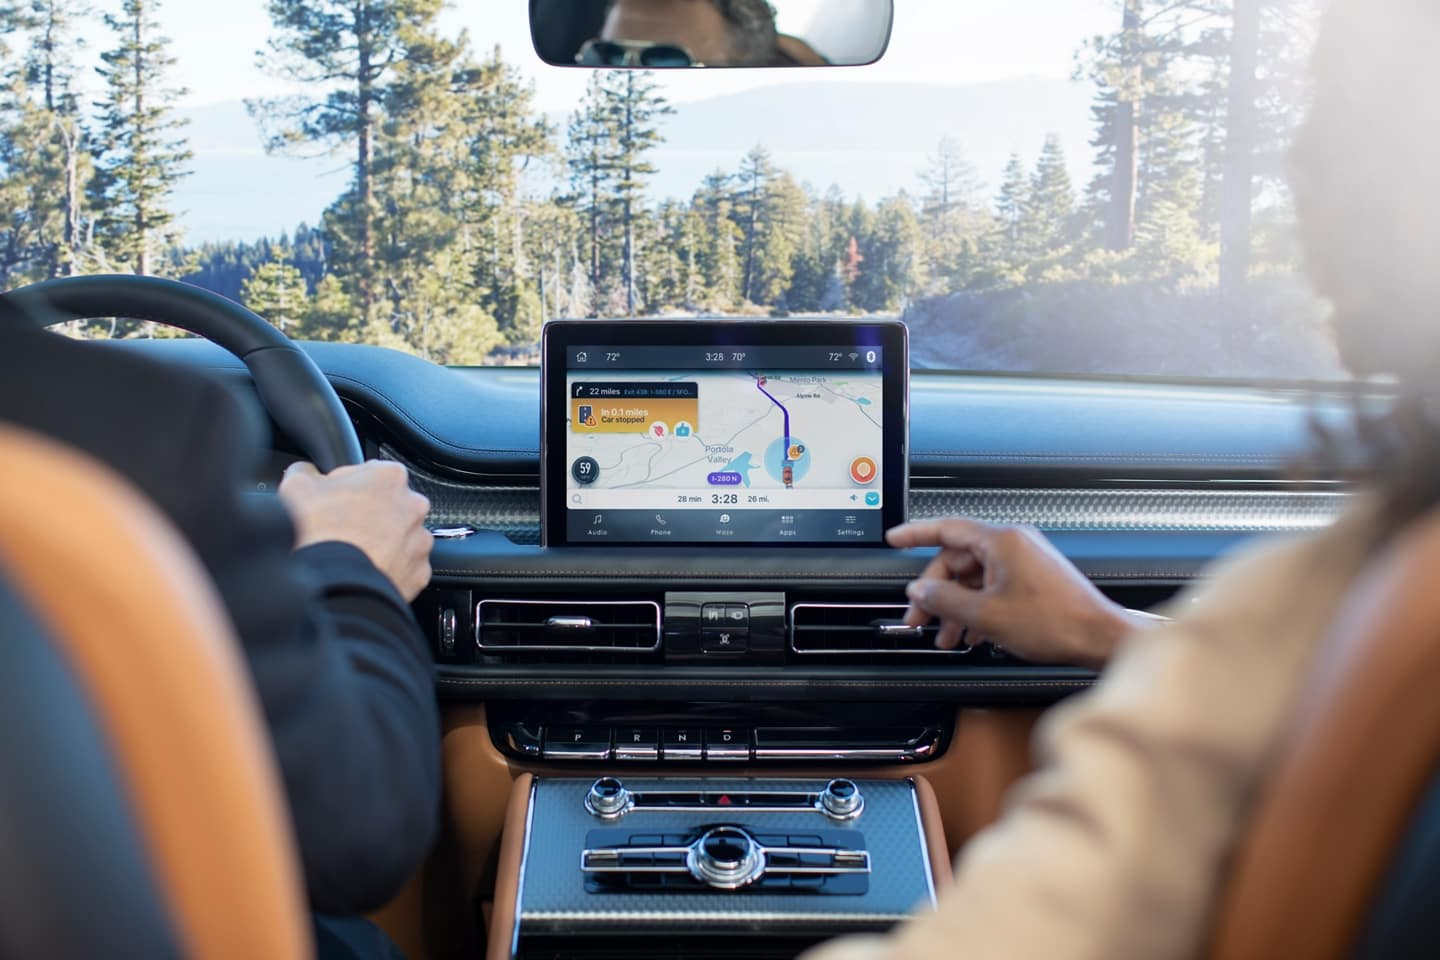 The Lincoln Aviator connects with apps like Waze